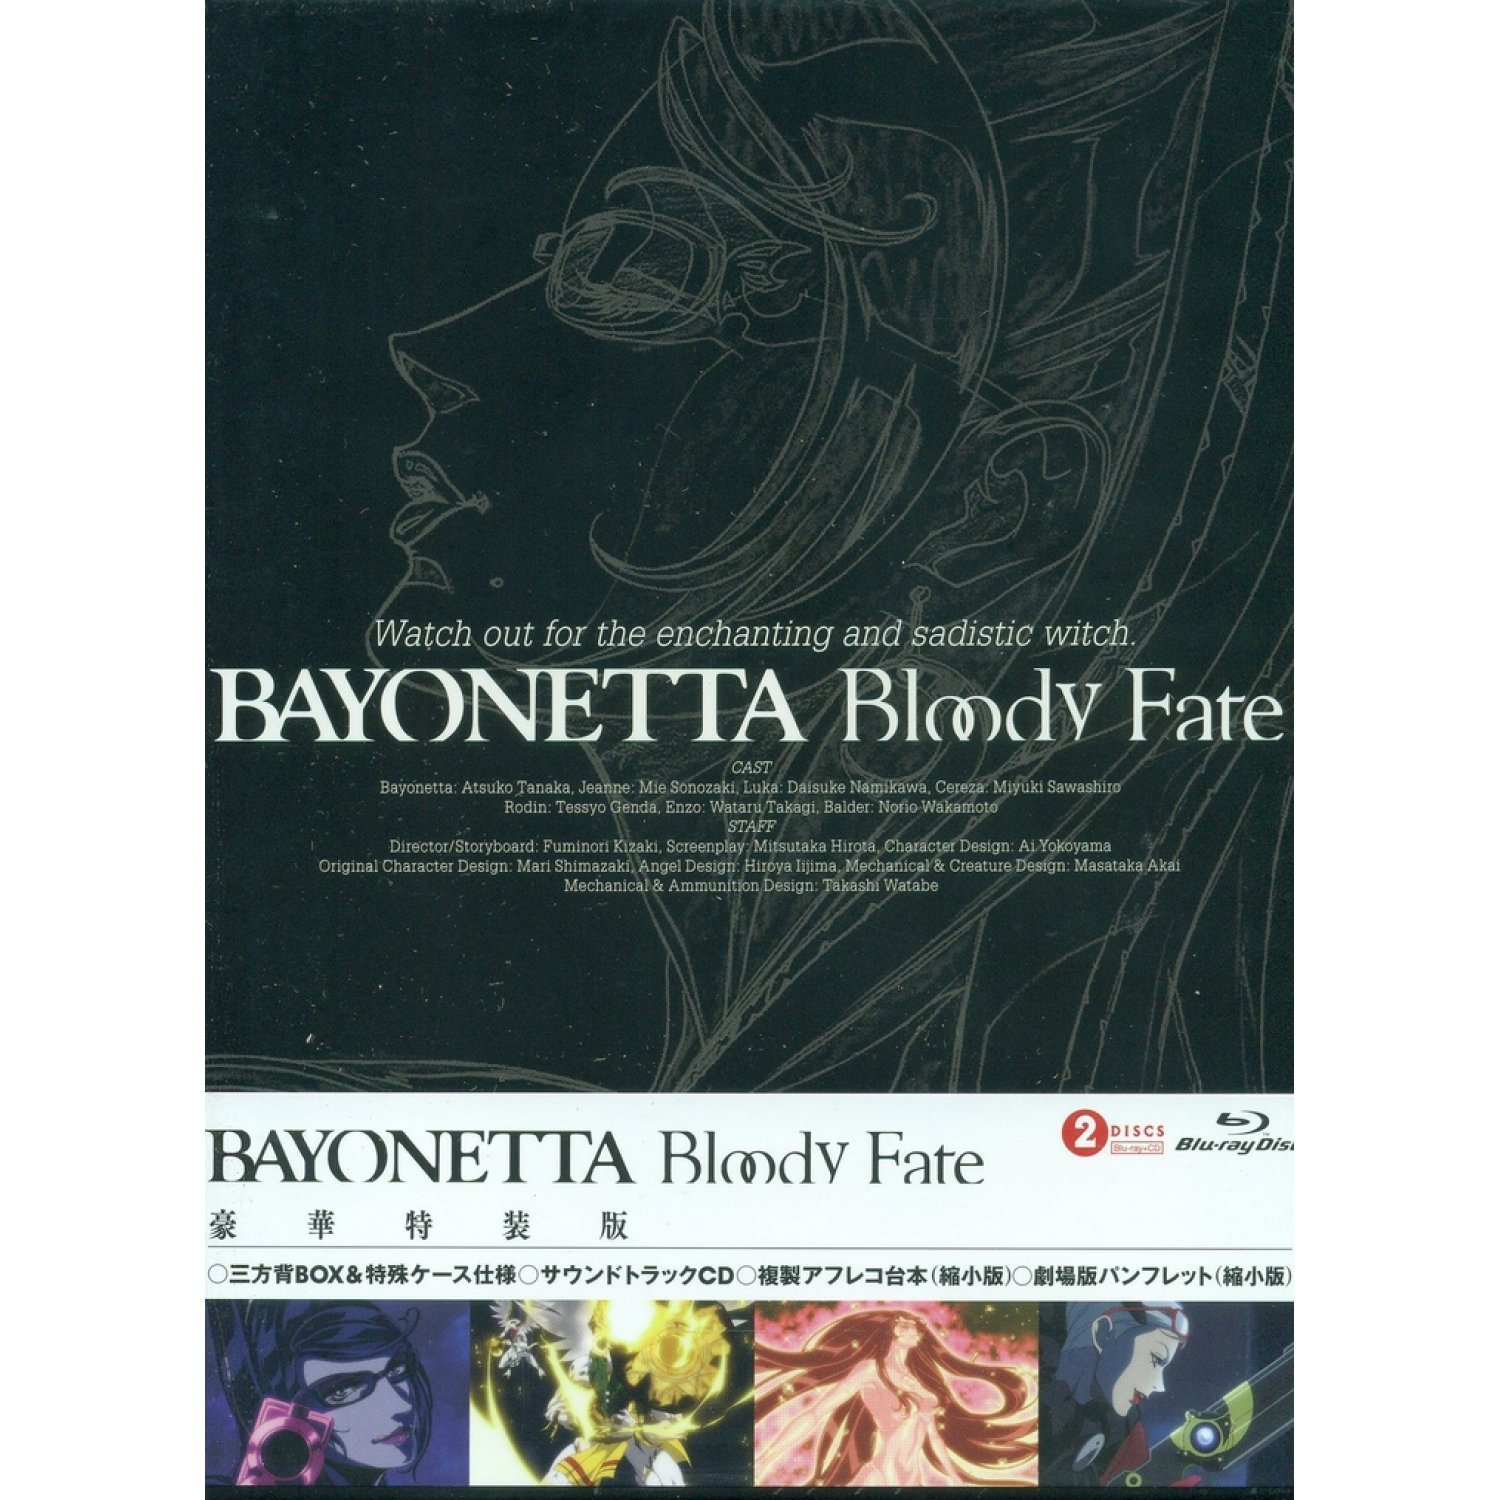 Bayonetta Bloody Fate Deluxe Edition Blu Ray Cd Limited Edition